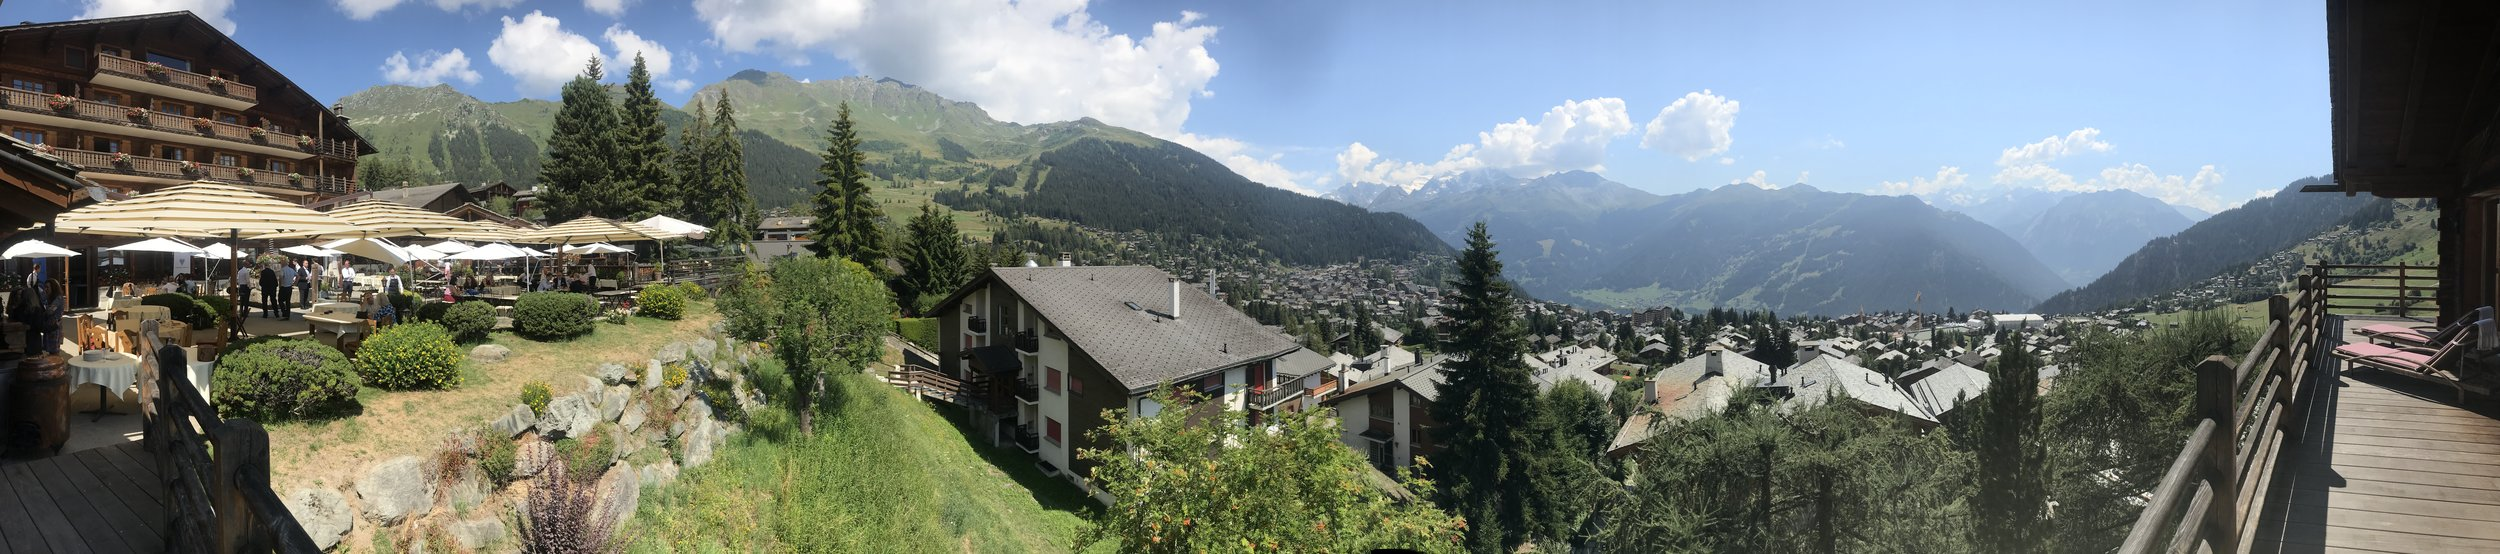 The Chalet d'Adrien, Verbier, during the Tsinandali Summit